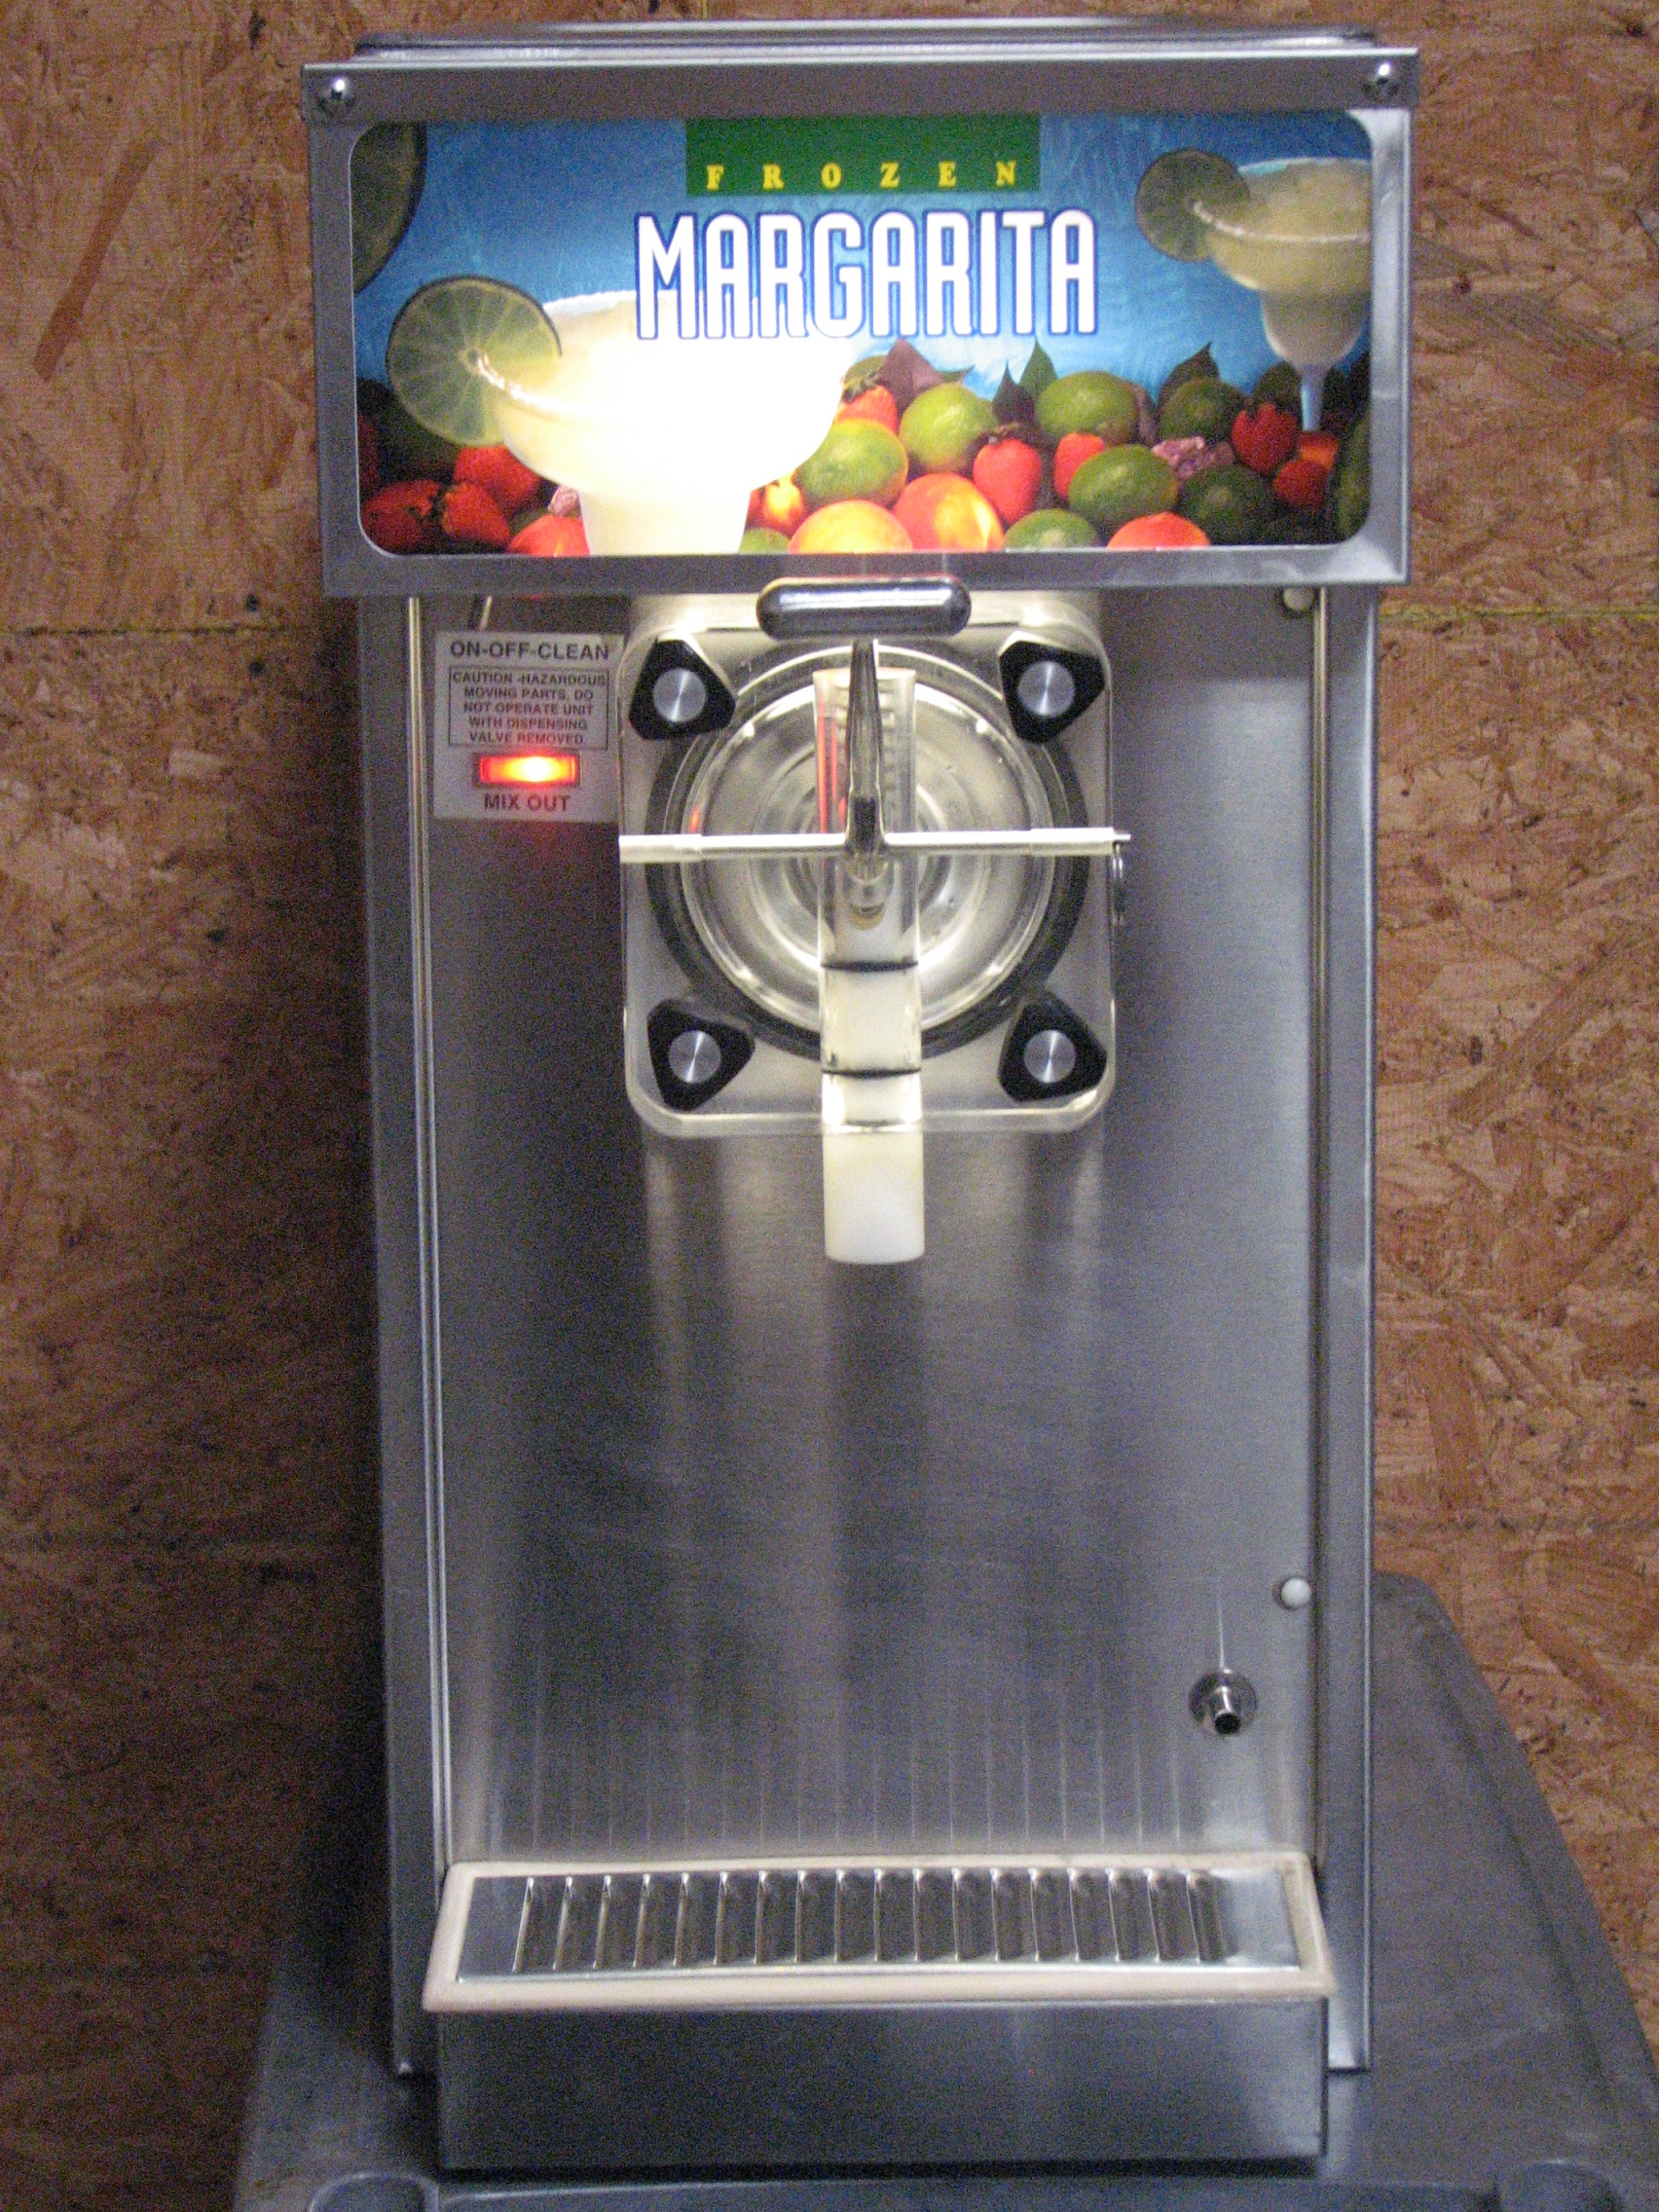 Used Grindmaster 3311 Margarita machine - frozen drink machine